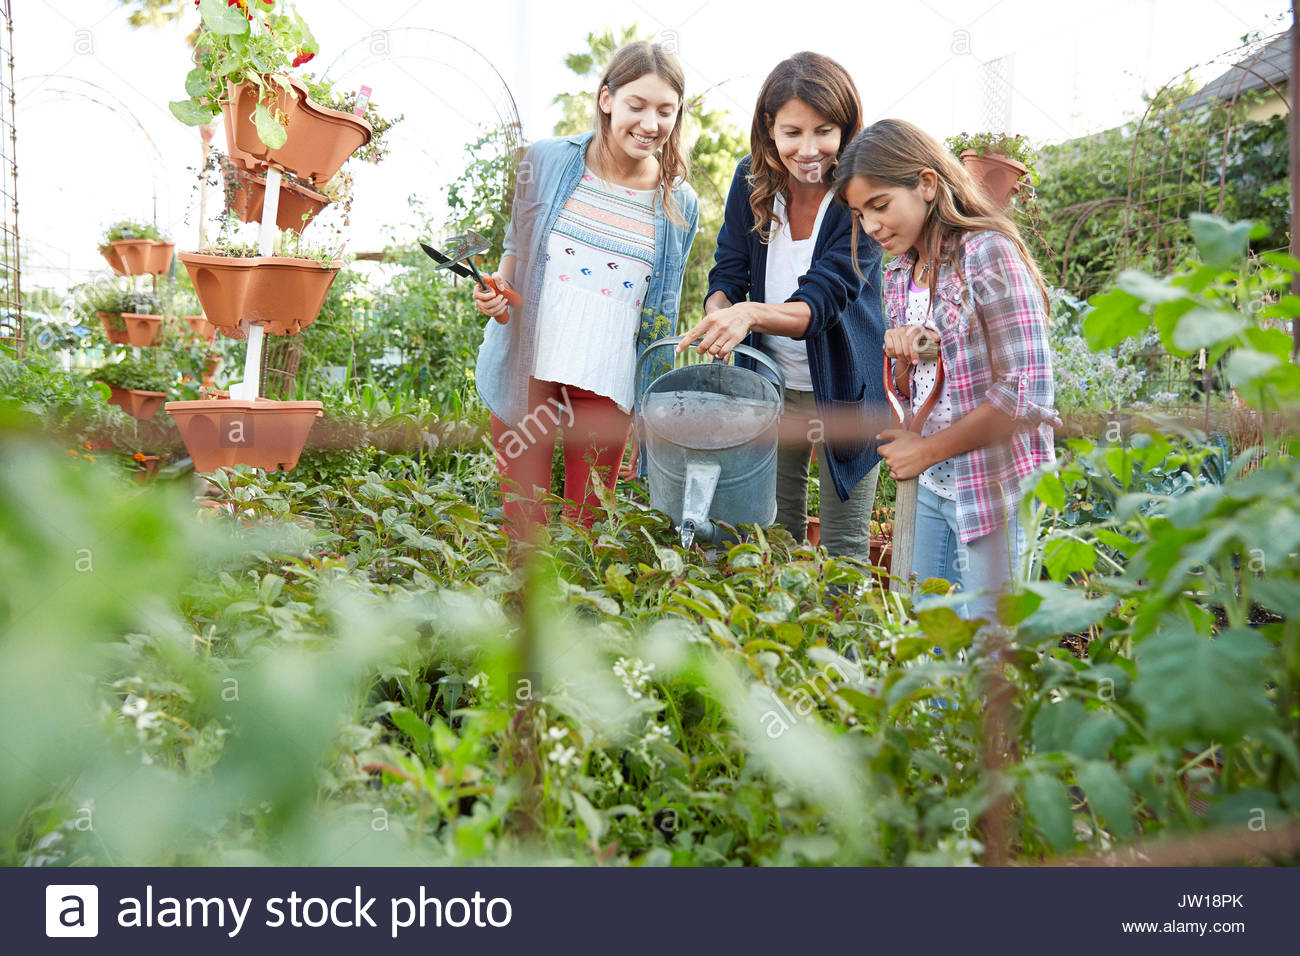 Latina mother and daughters watering plants in vegetable garden - Stock Image